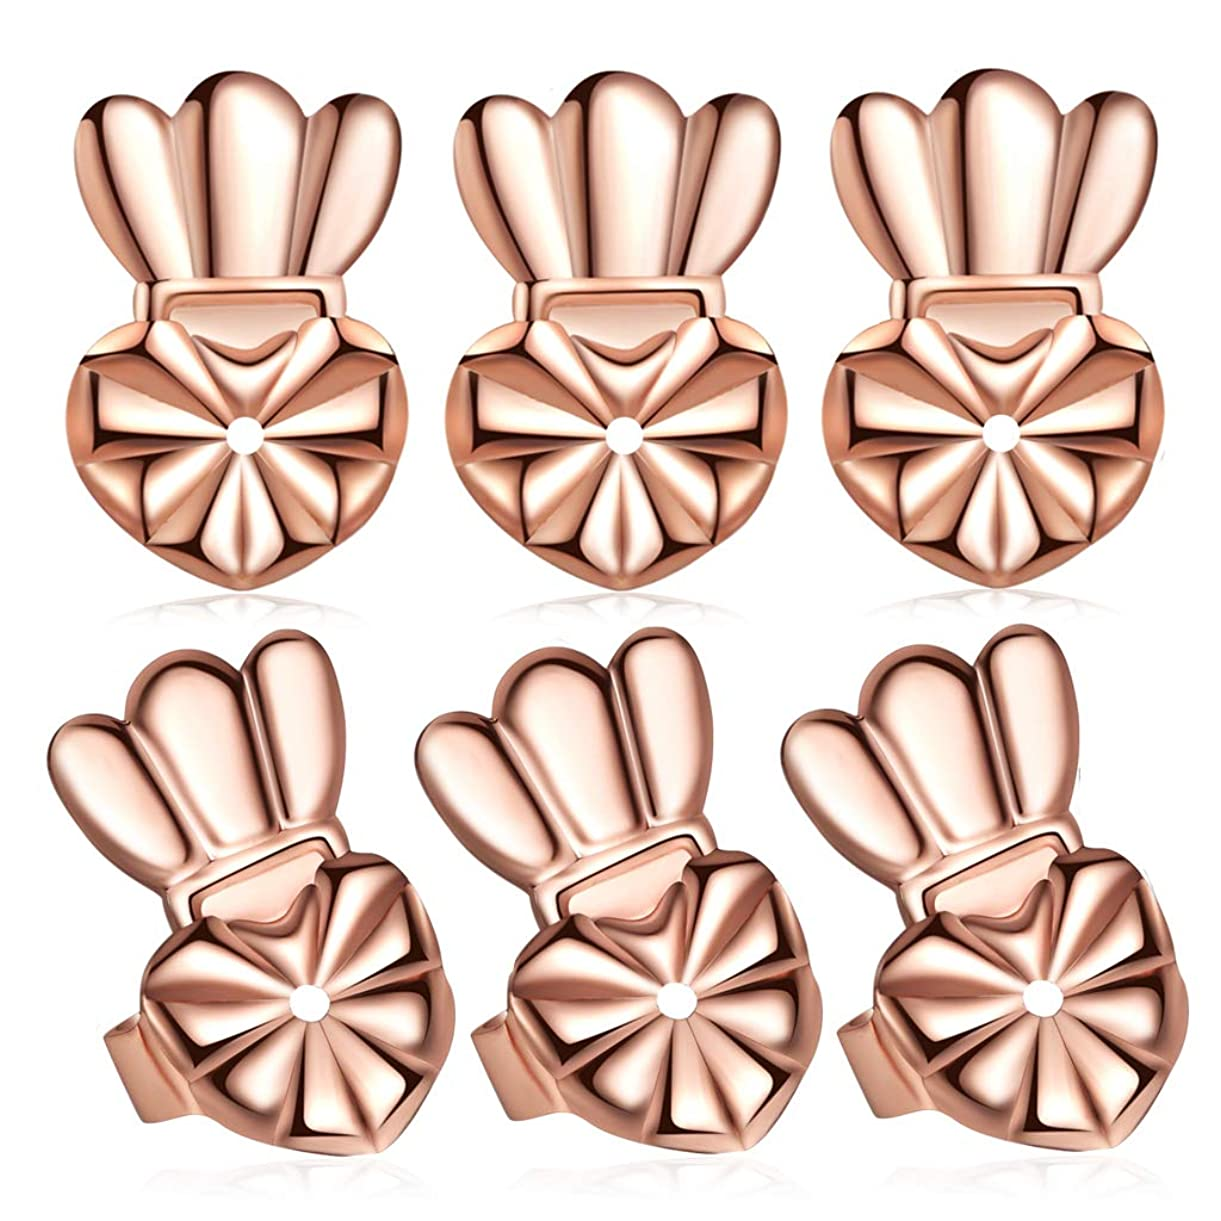 Hypoallergenic Earring Lifters Drooping Earring Backs, Large Post Stud Earring Backings Rose Gold Plated 3 Pairs/Set fdymi0473